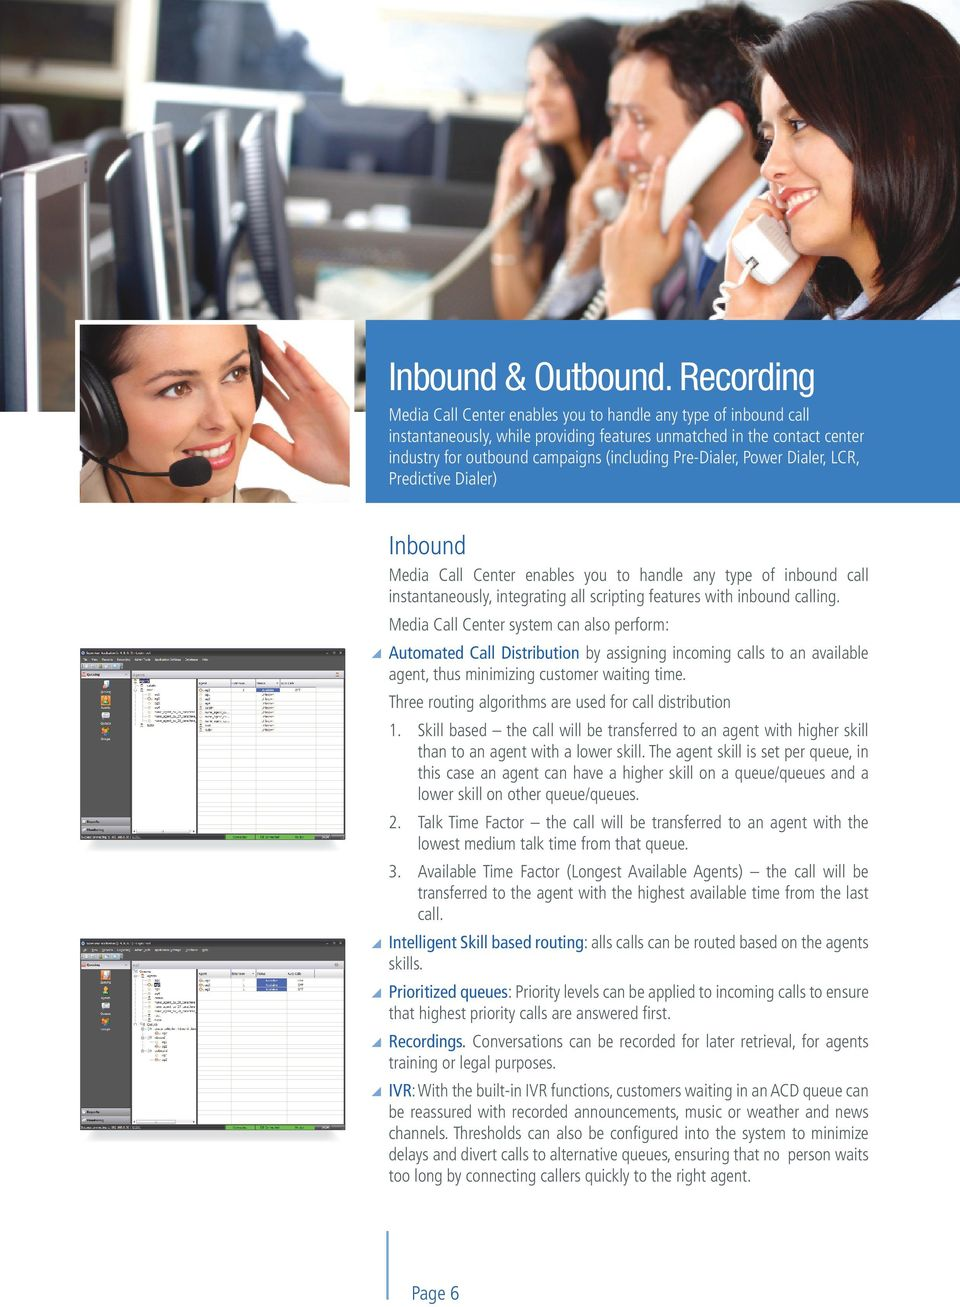 Pre-Dialer, Power Dialer, LCR, Predictive Dialer) Inbound Media Call Center enables you to handle any type of inbound call instantaneously, integrating all scripting features with inbound calling.